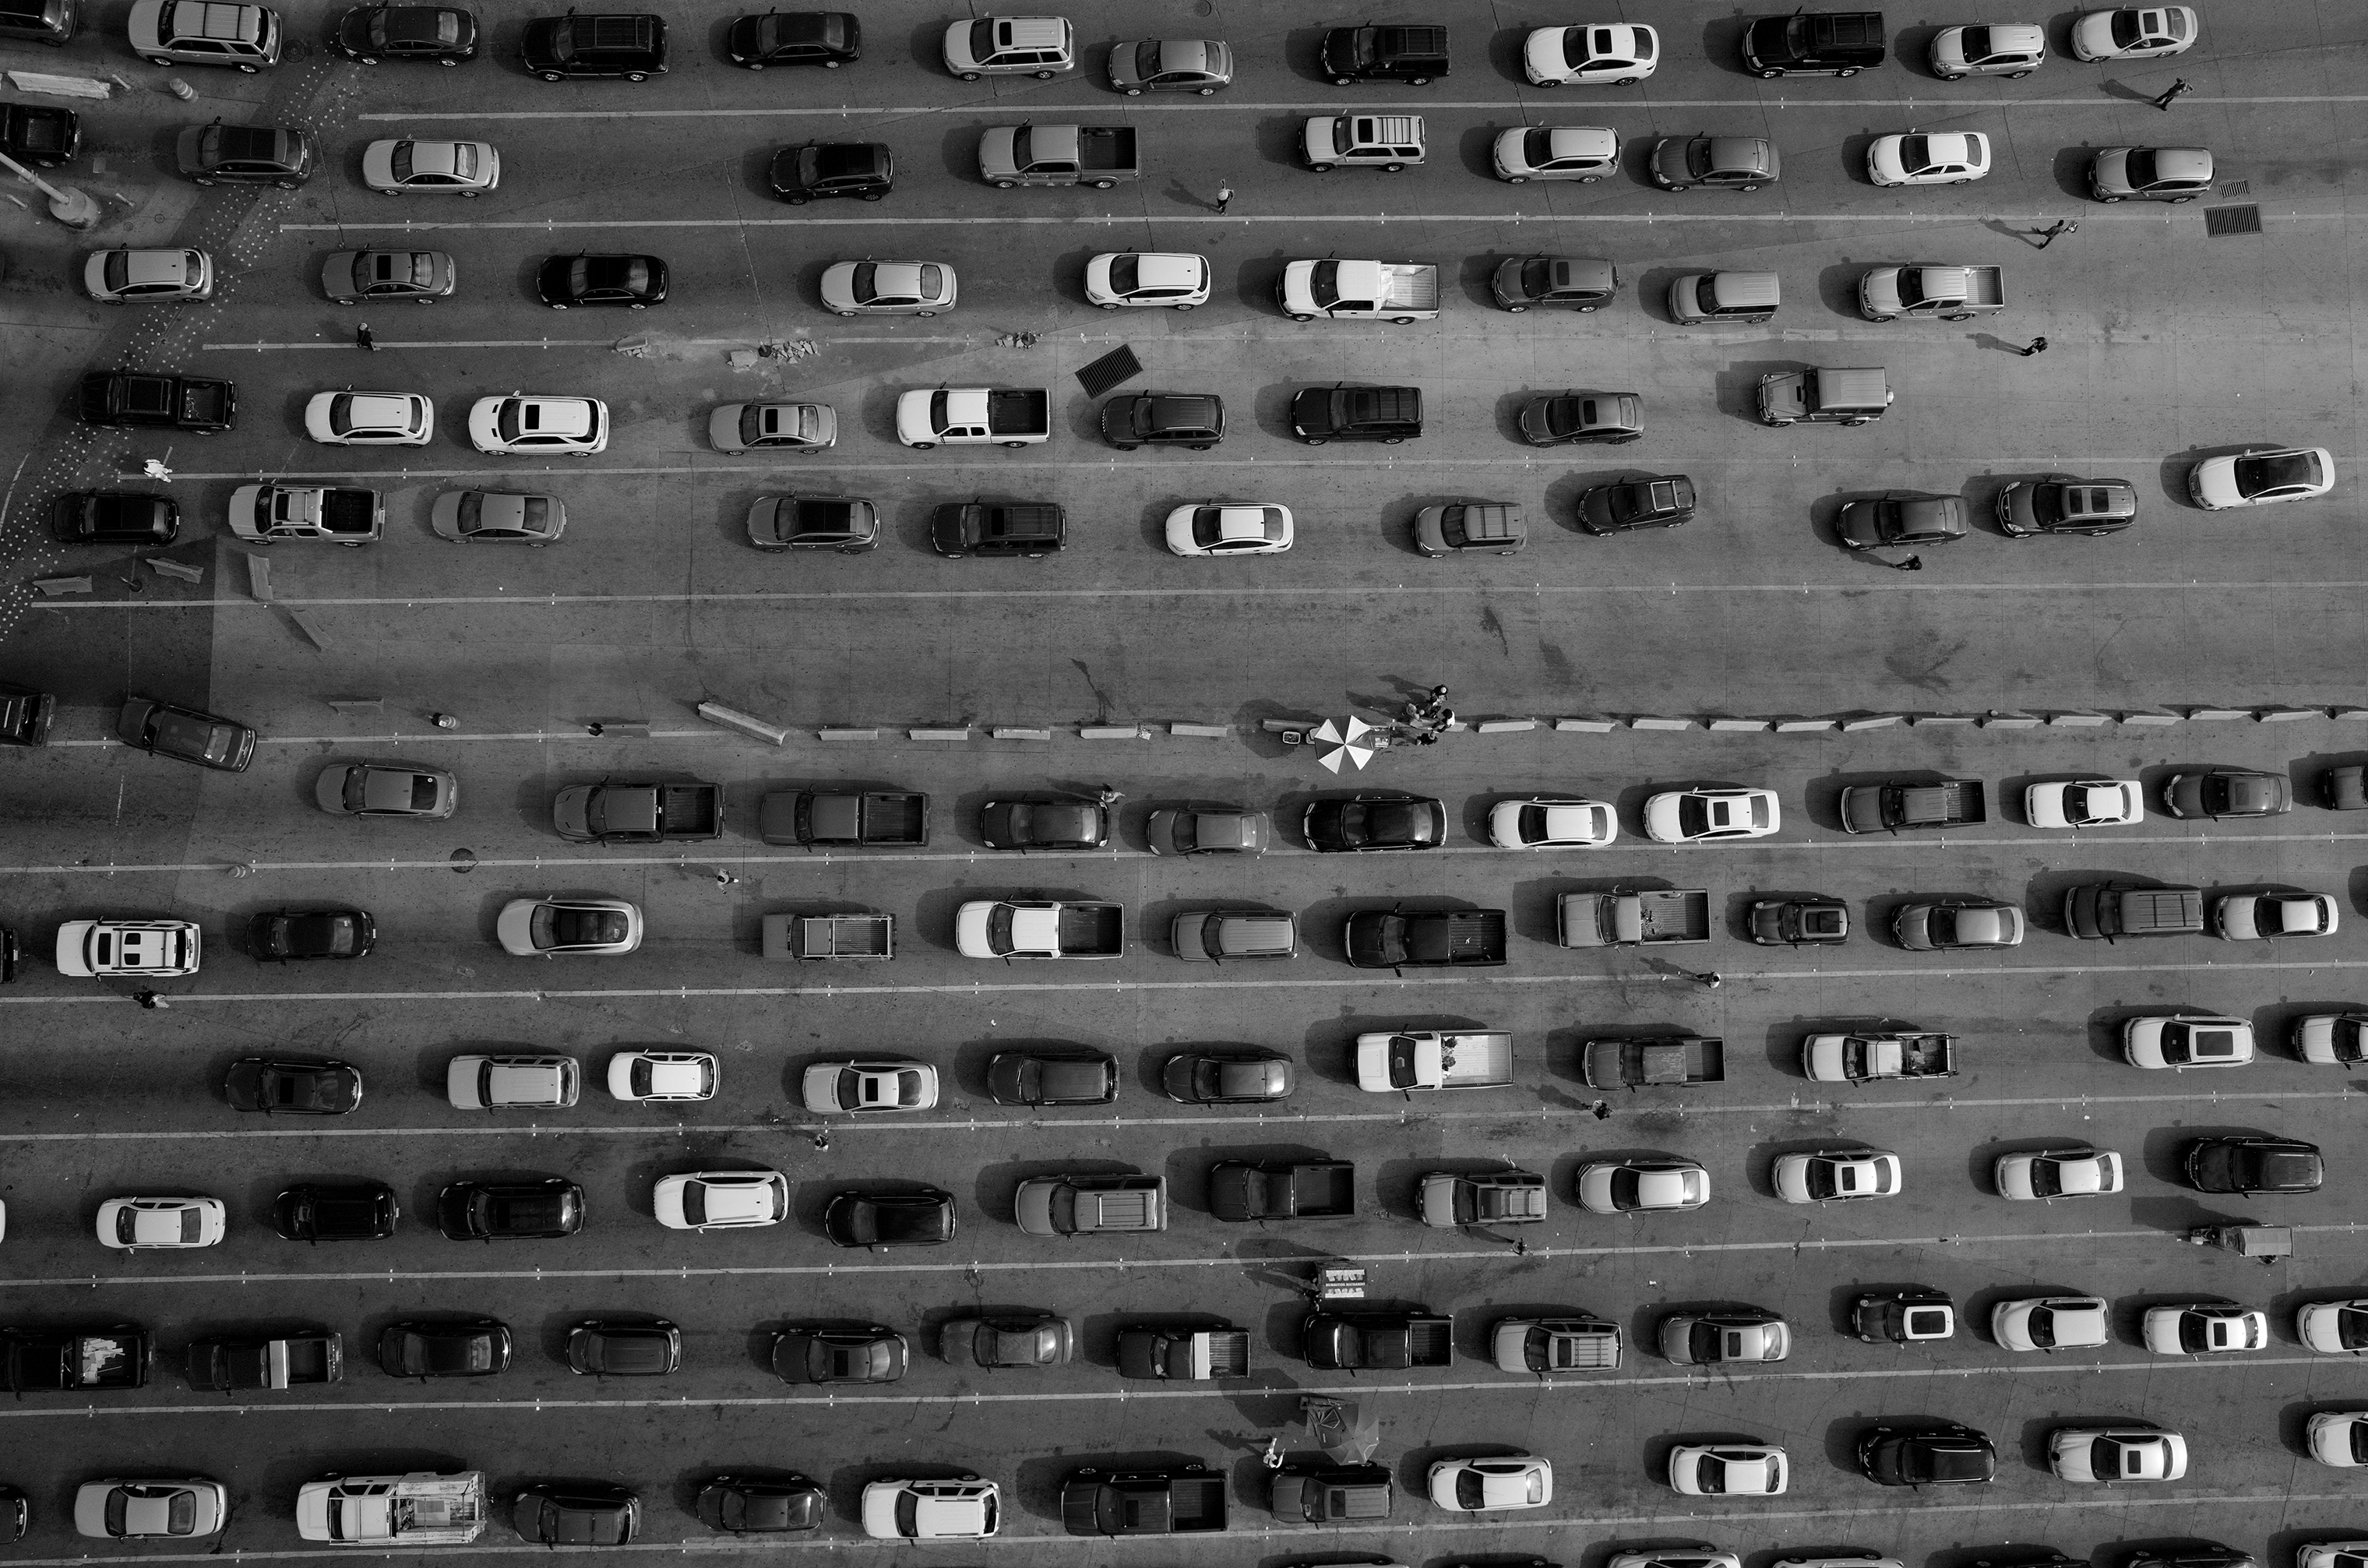 Lanes of cars line up along the U.S.-Mexico border at the port of entry at San Ysidro, California and Tijuana, Baja California. The port is the largest land border crossing point in the world.